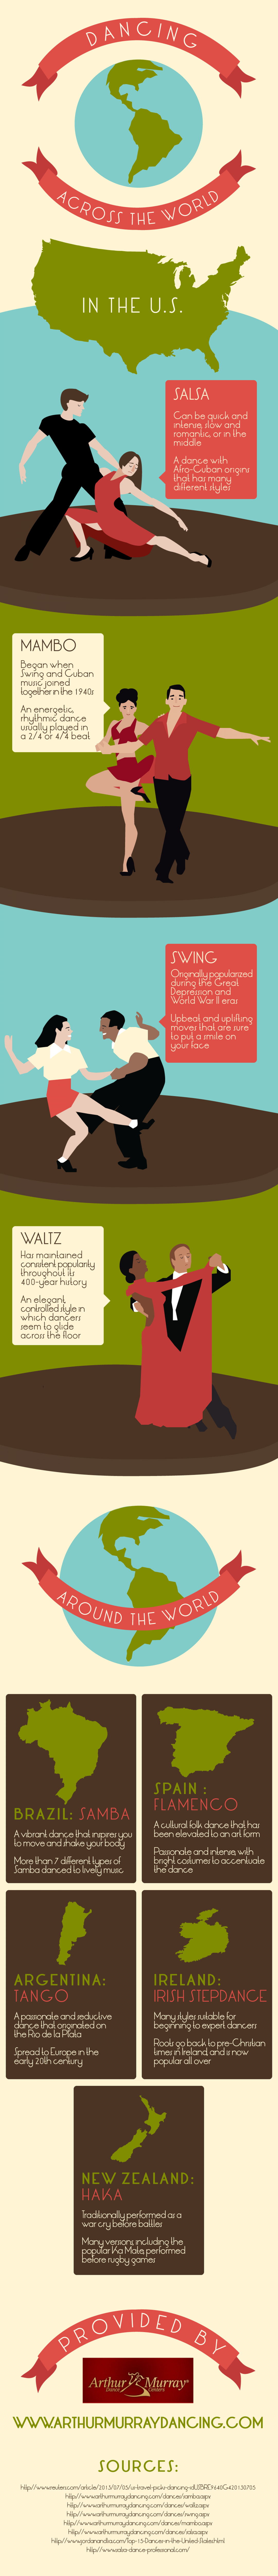 Dancing Across the World  Infographic